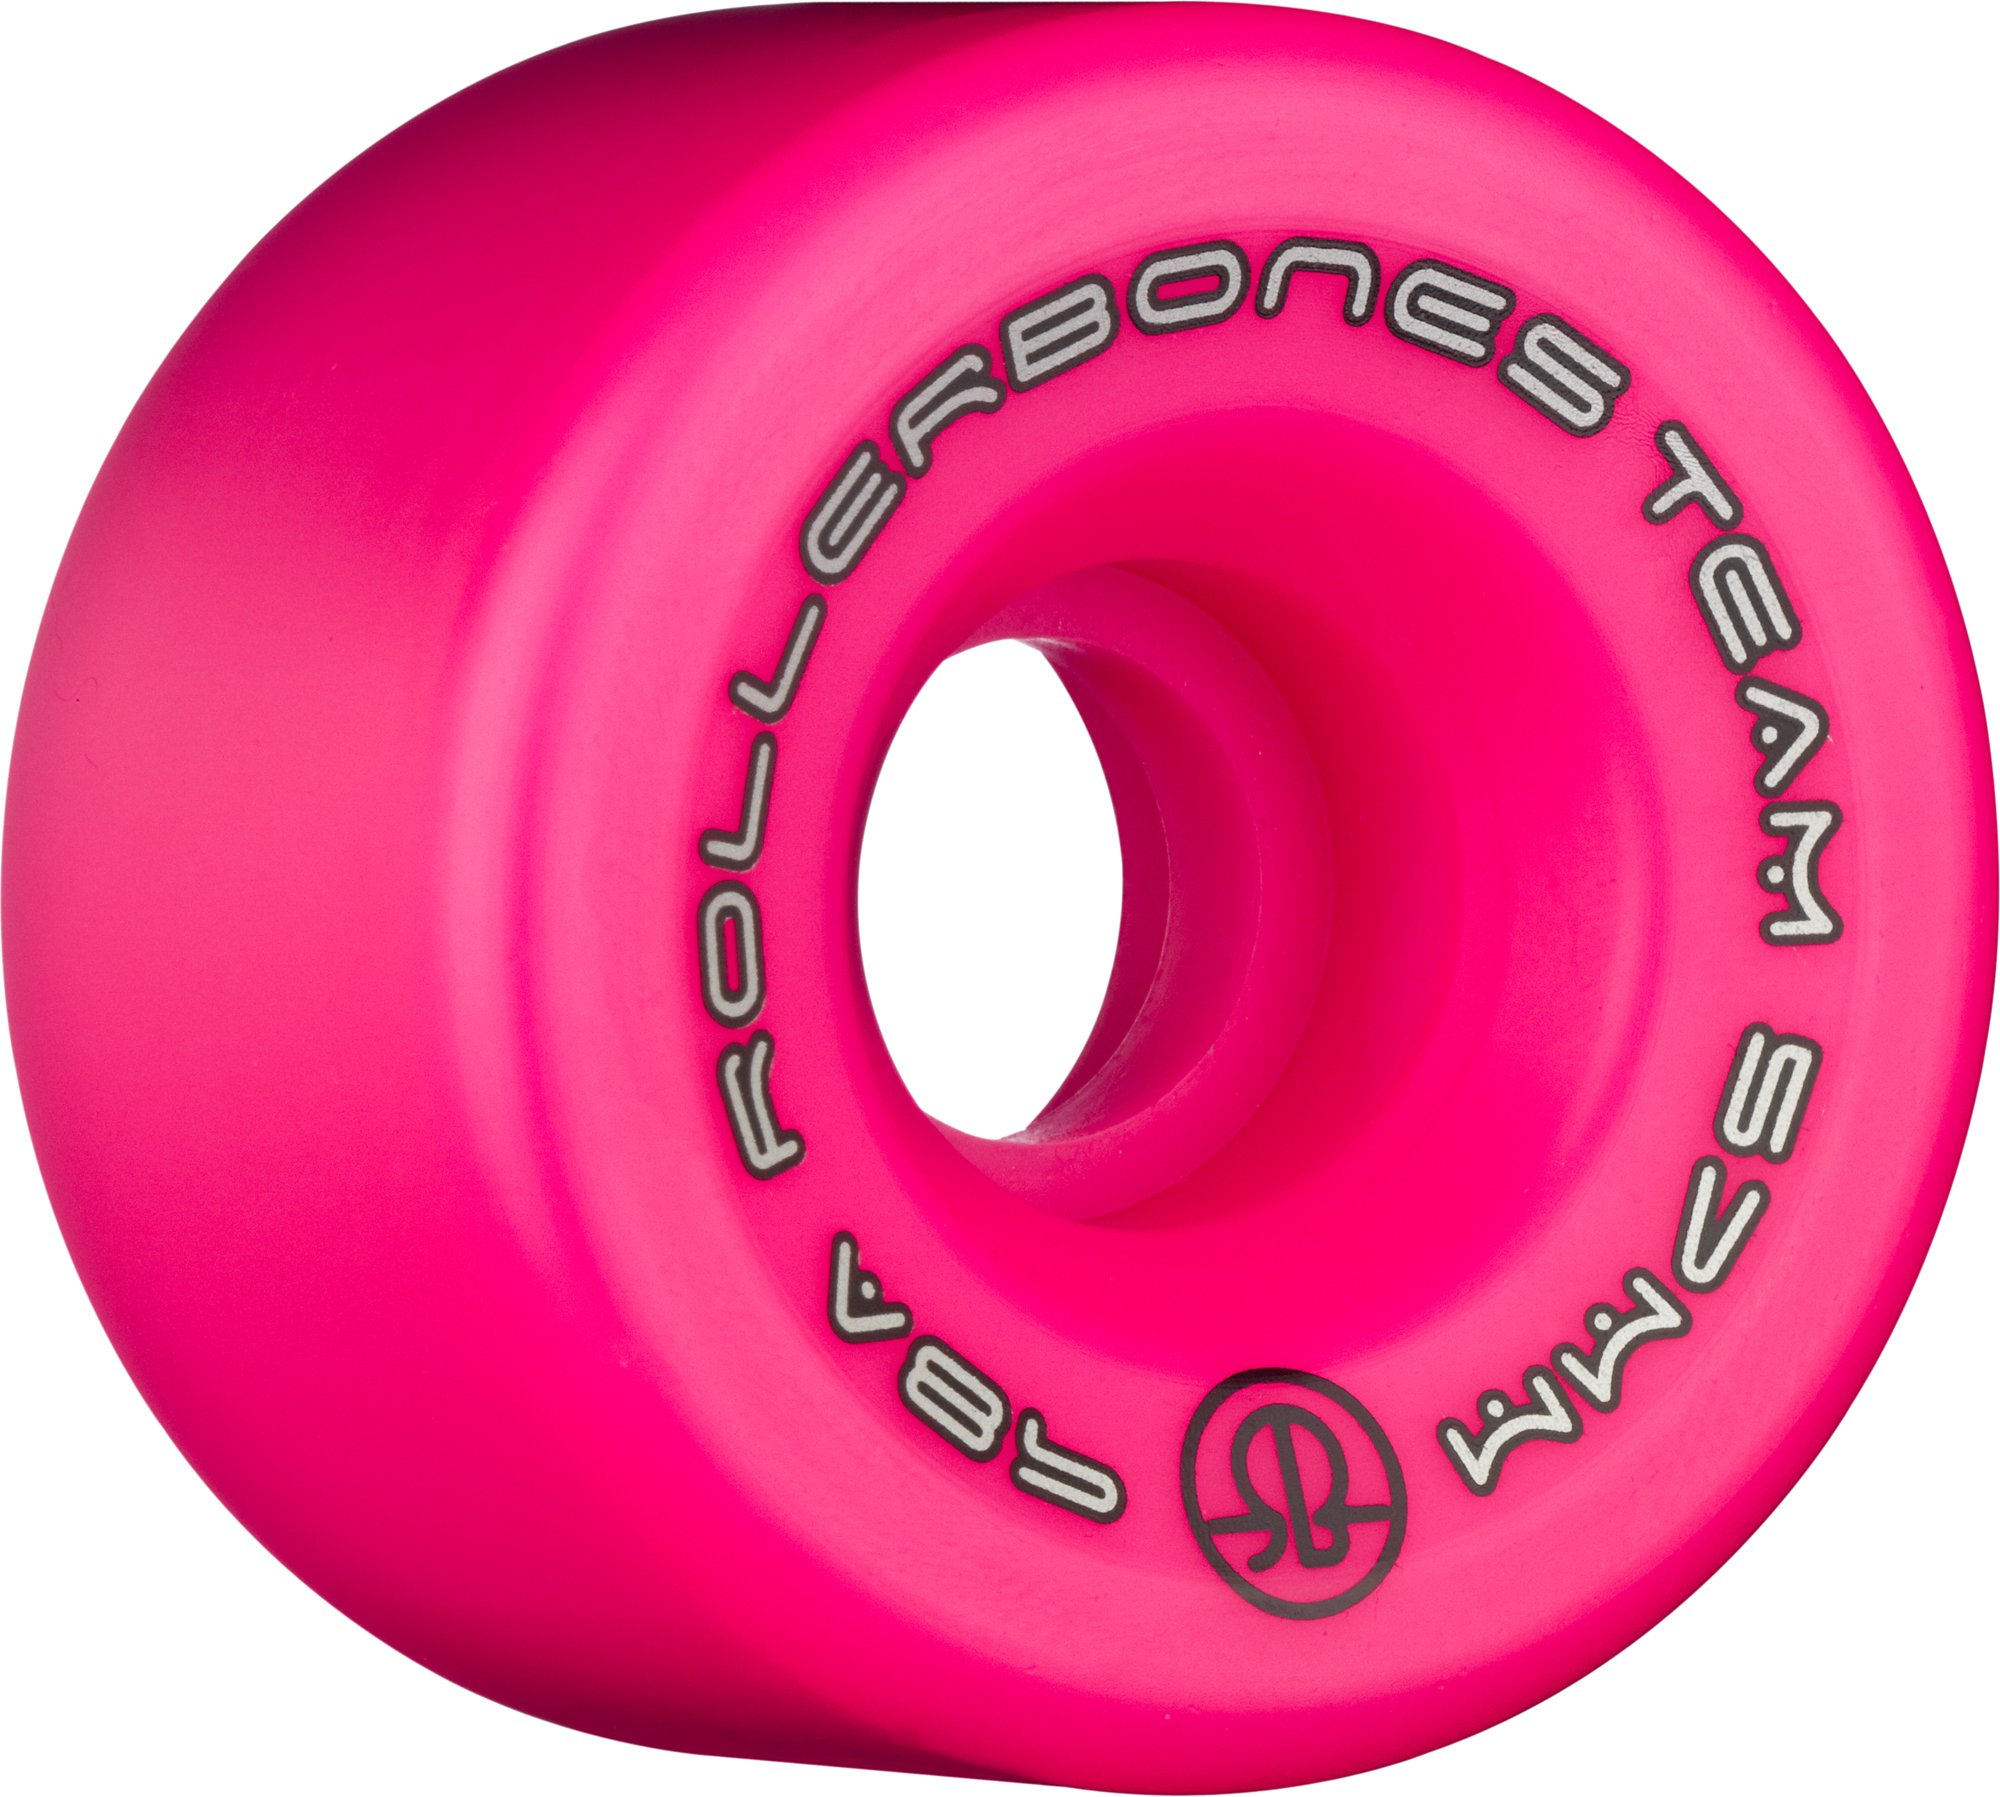 RollerBones Team Logo 98A Recreational Roller Skate Wheels (Set of 8), Pink, 57mm by RollerBones